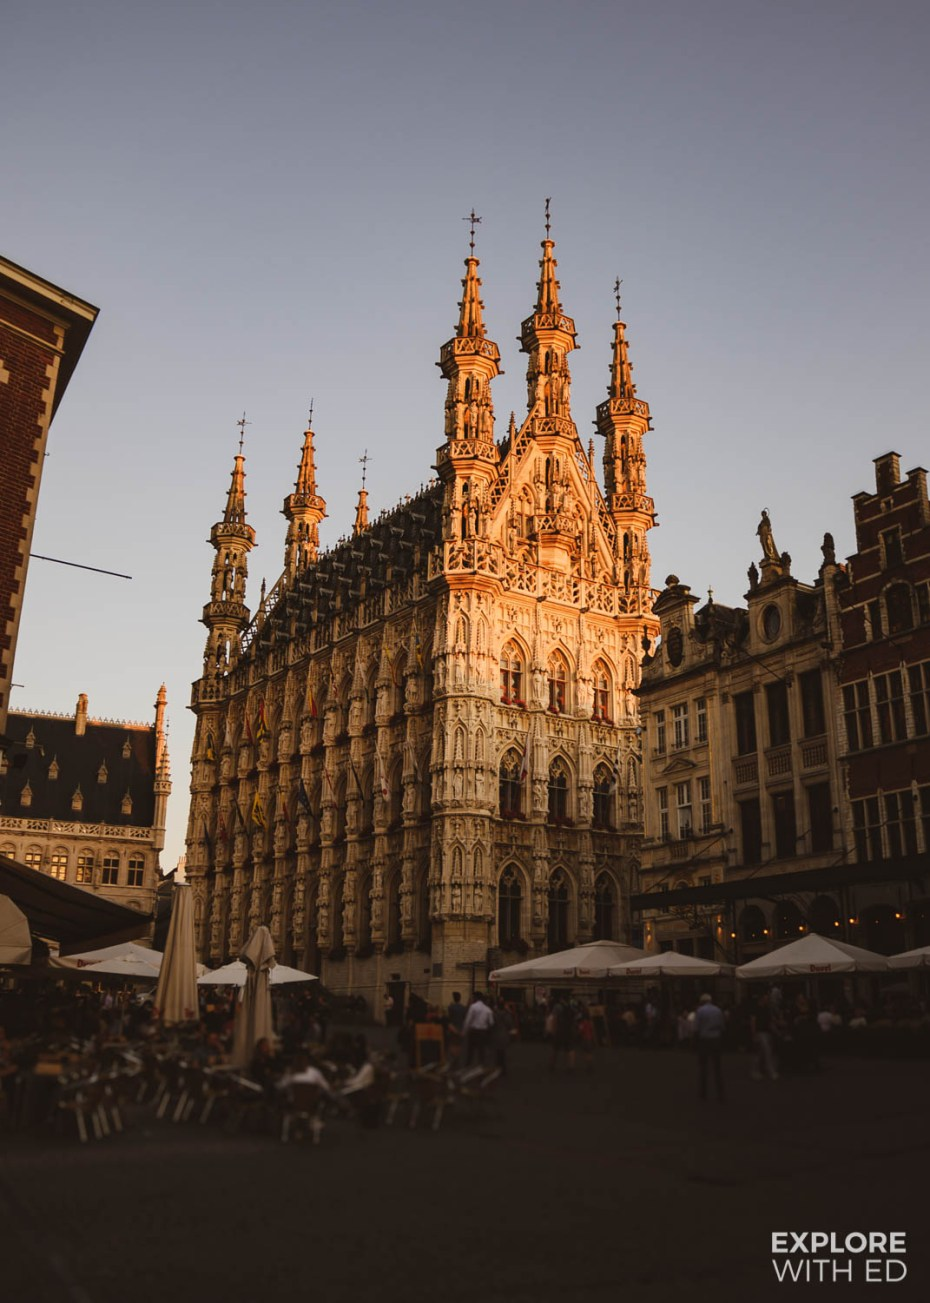 The beautiful Town Hall in Leuven took thirty years to build. It's one of the top historic sites in Leuven.